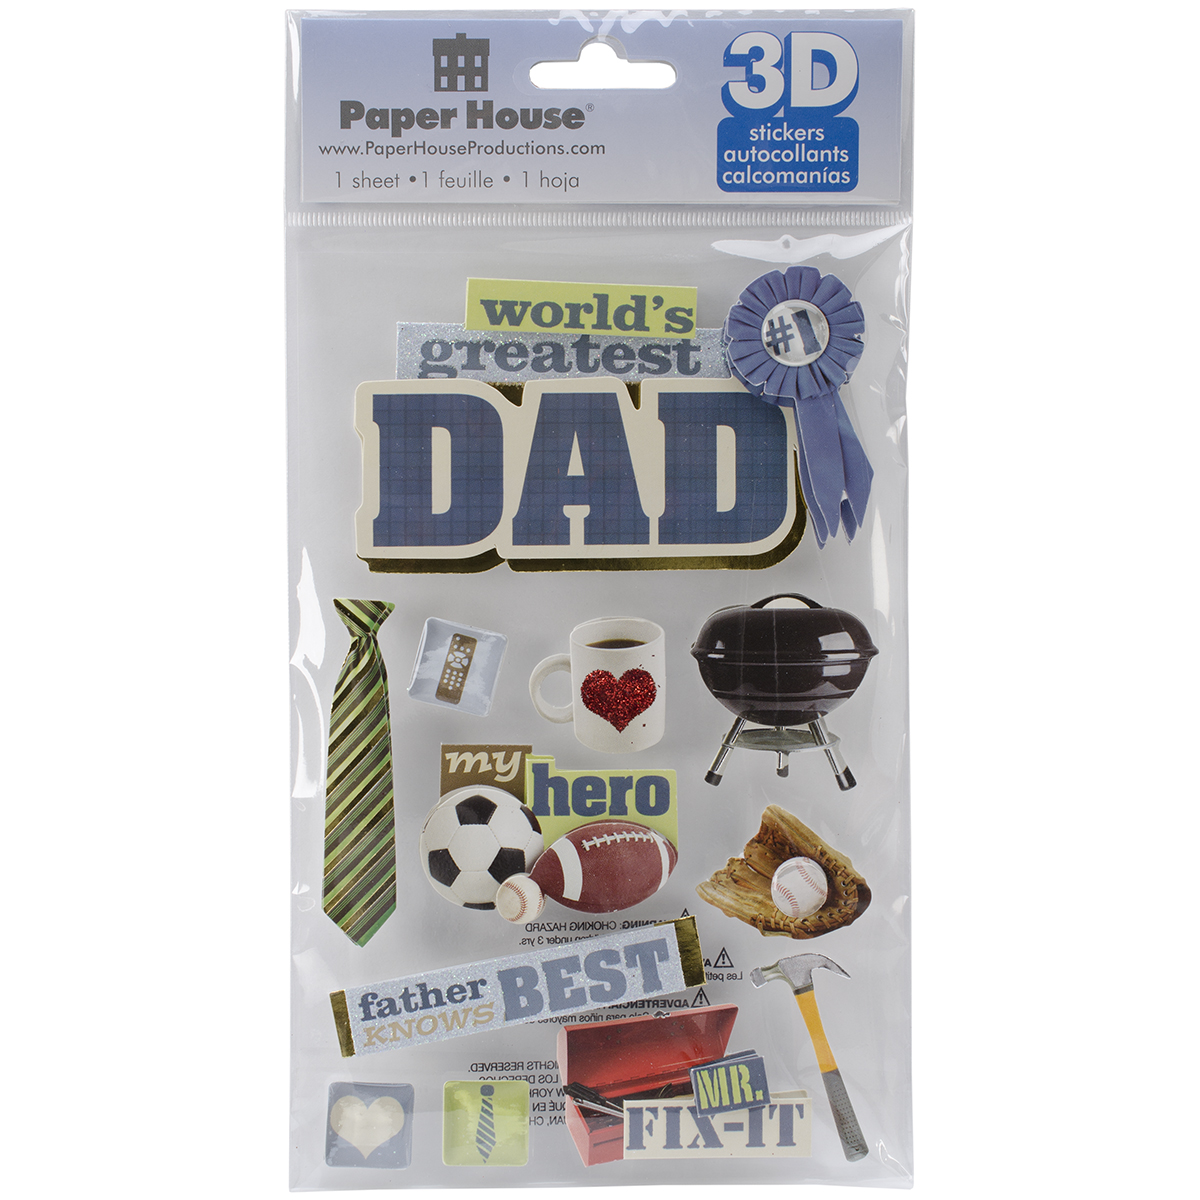 DAD       -3D STICKERS